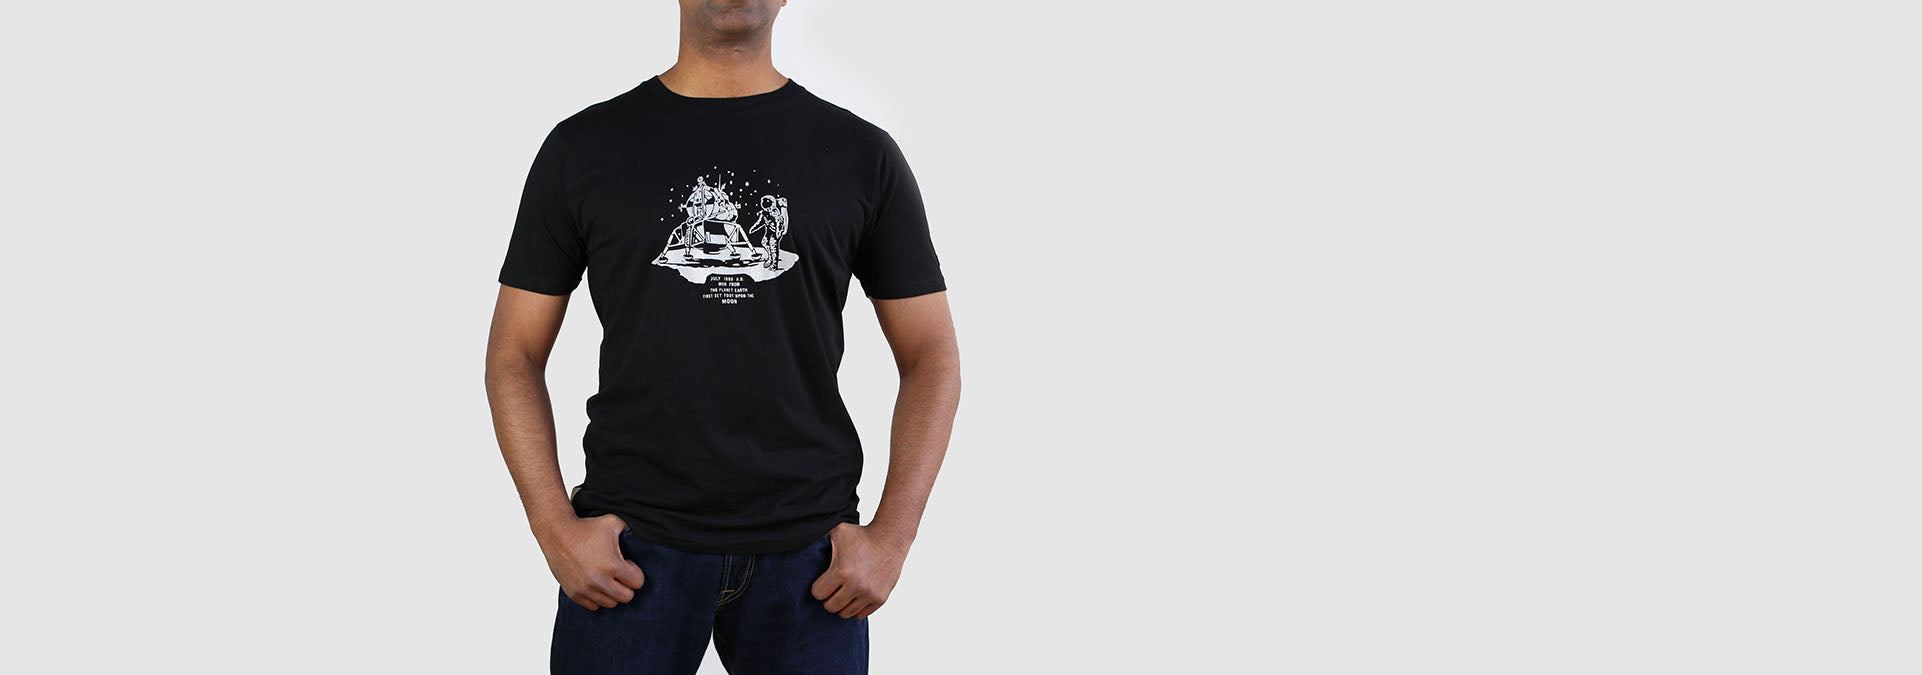 Apollo 11 Organic Cotton T-Shirt Navy